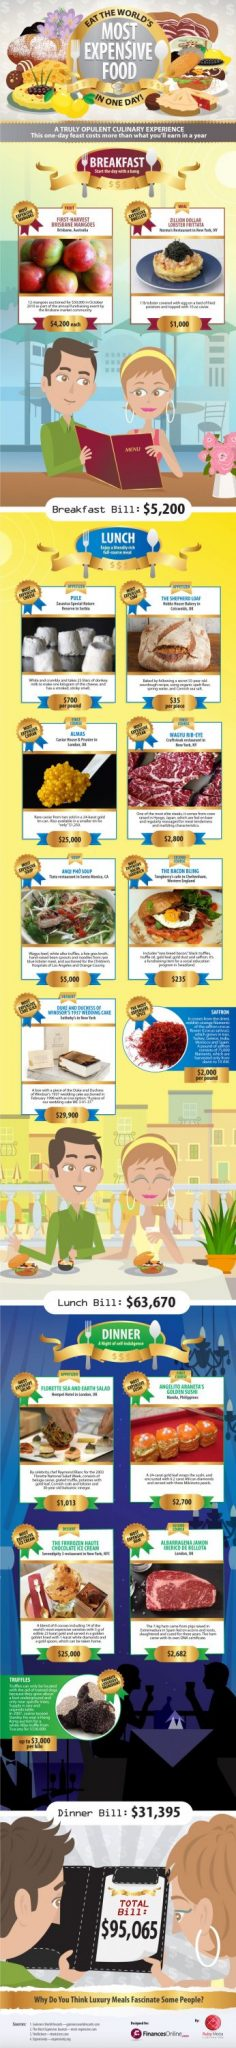 Worlds Most Expensive Food Infographic